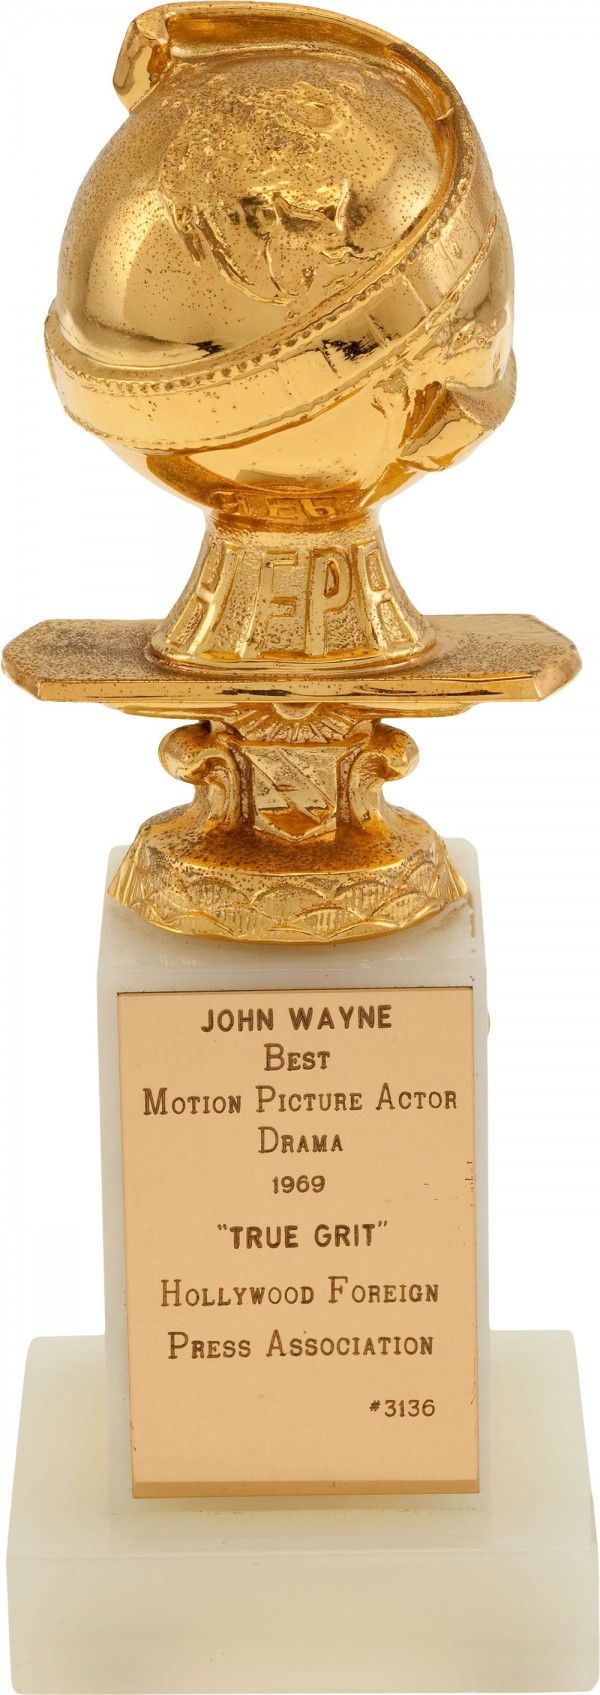 John Wayne's Golden Globe Award for True Grit Movie